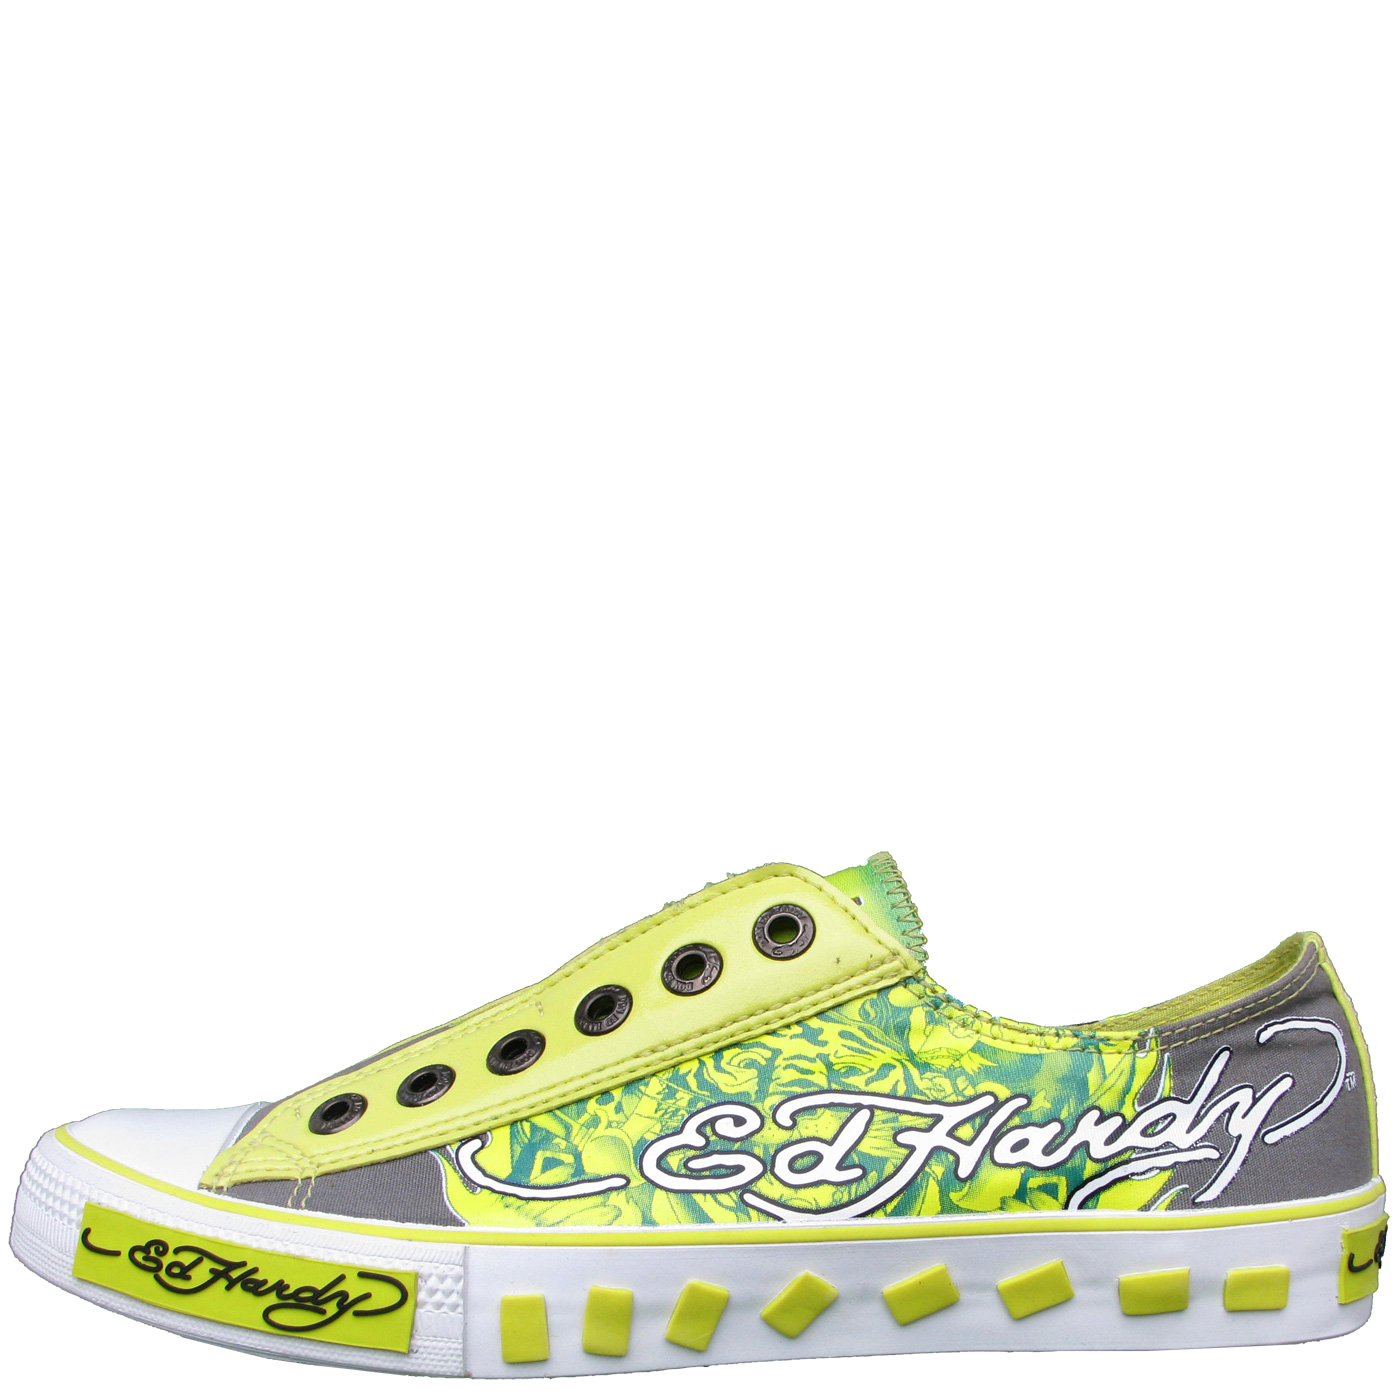 Ed Hardy Lowrise Van Nuys Shoe for Kids - Green